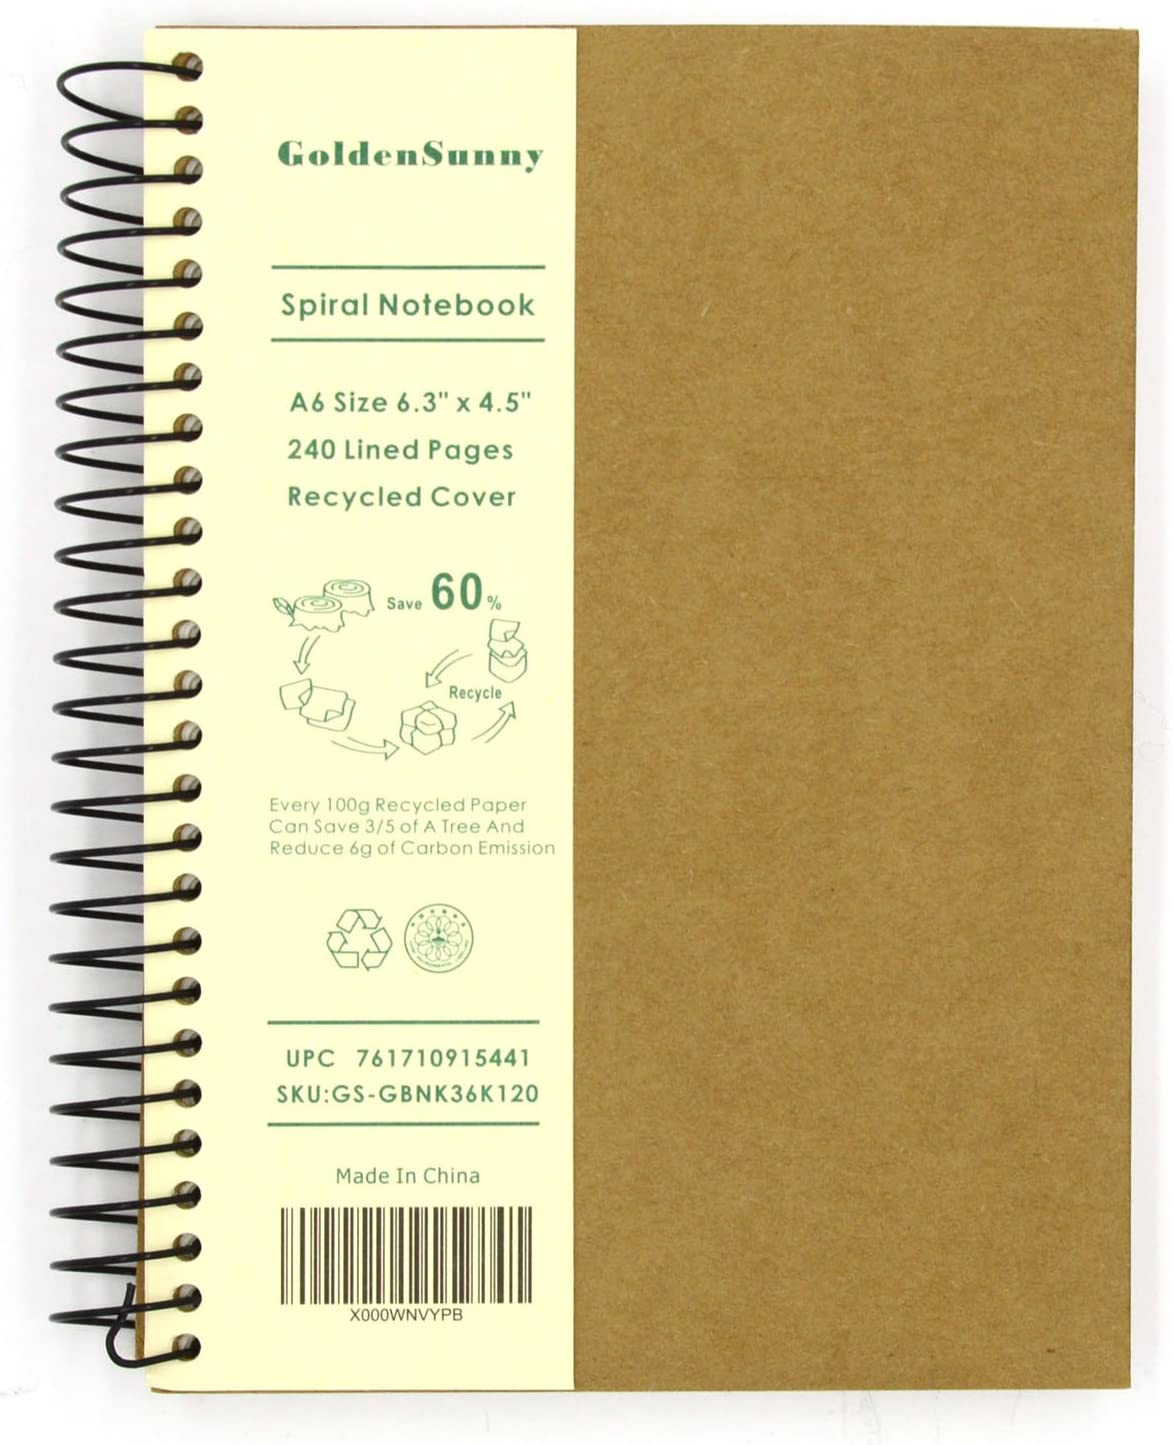 Small Spiral Notebook, 240 Lined Pages, A6 Size Wide Ruled Paper, Recycled Hard Cover - GoldenSunny